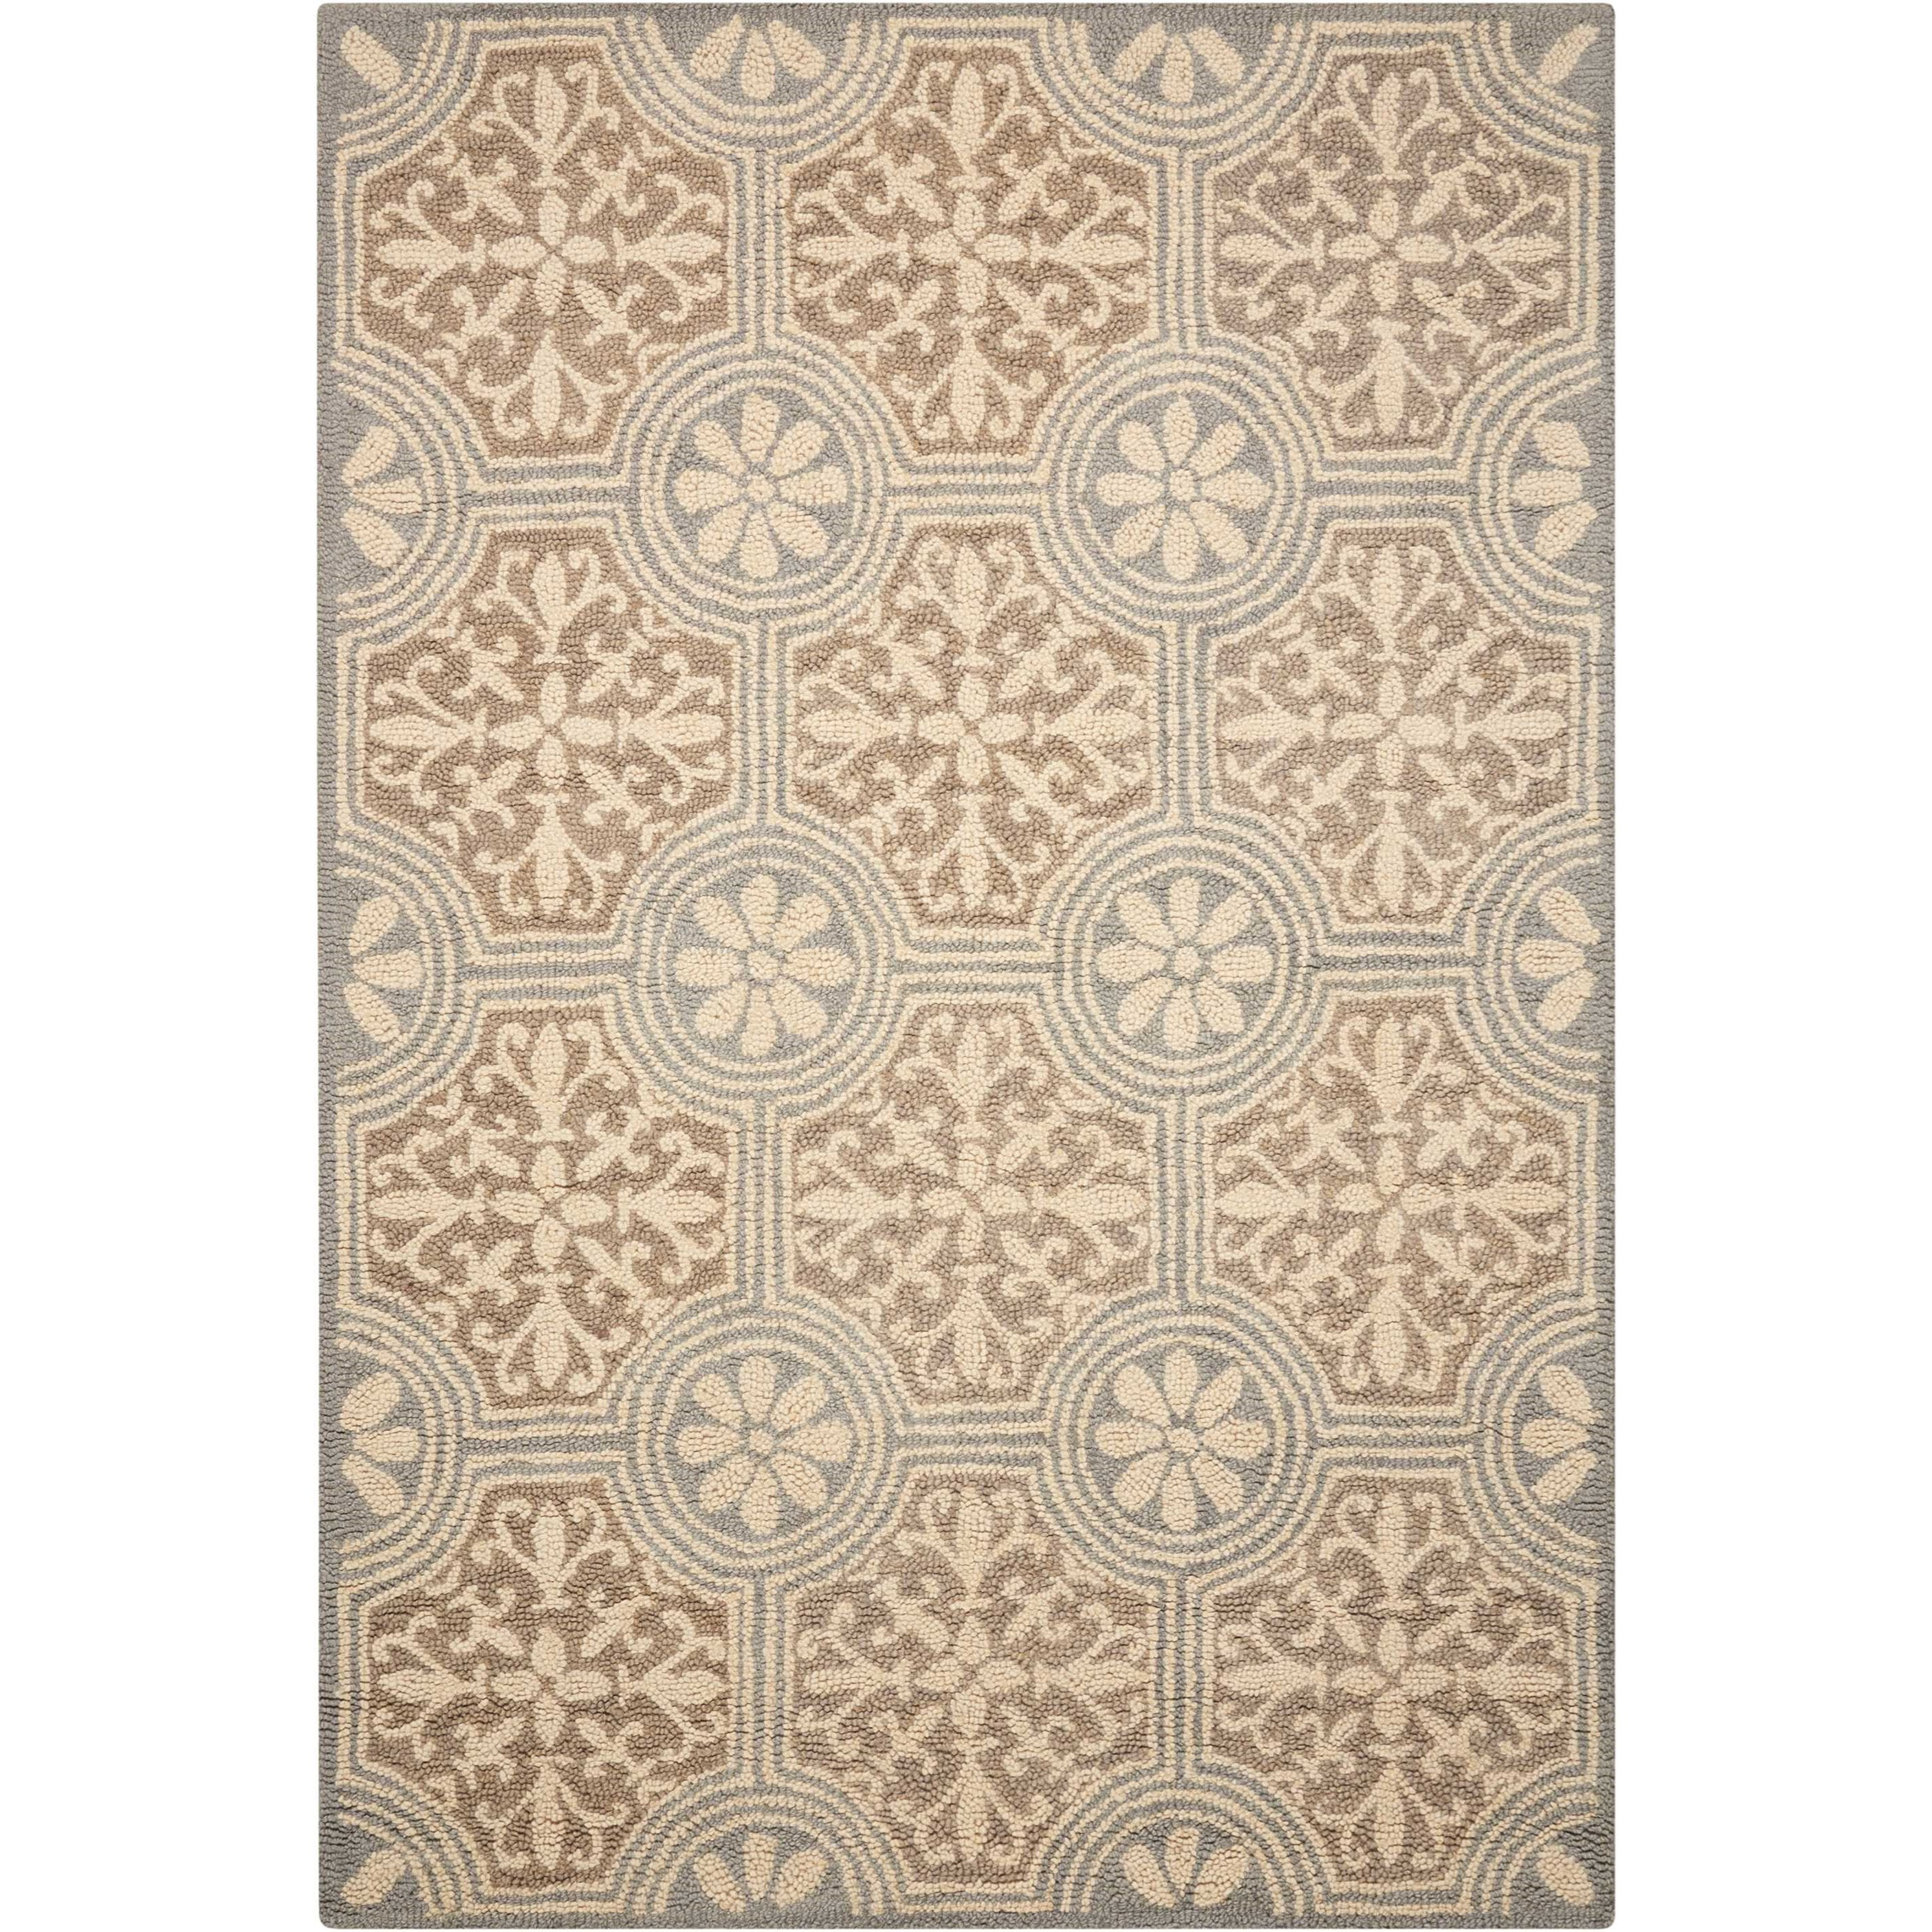 """Marina 8' x 10'6"""" Grey Rectangle Rug by Nourison at Home Collections Furniture"""